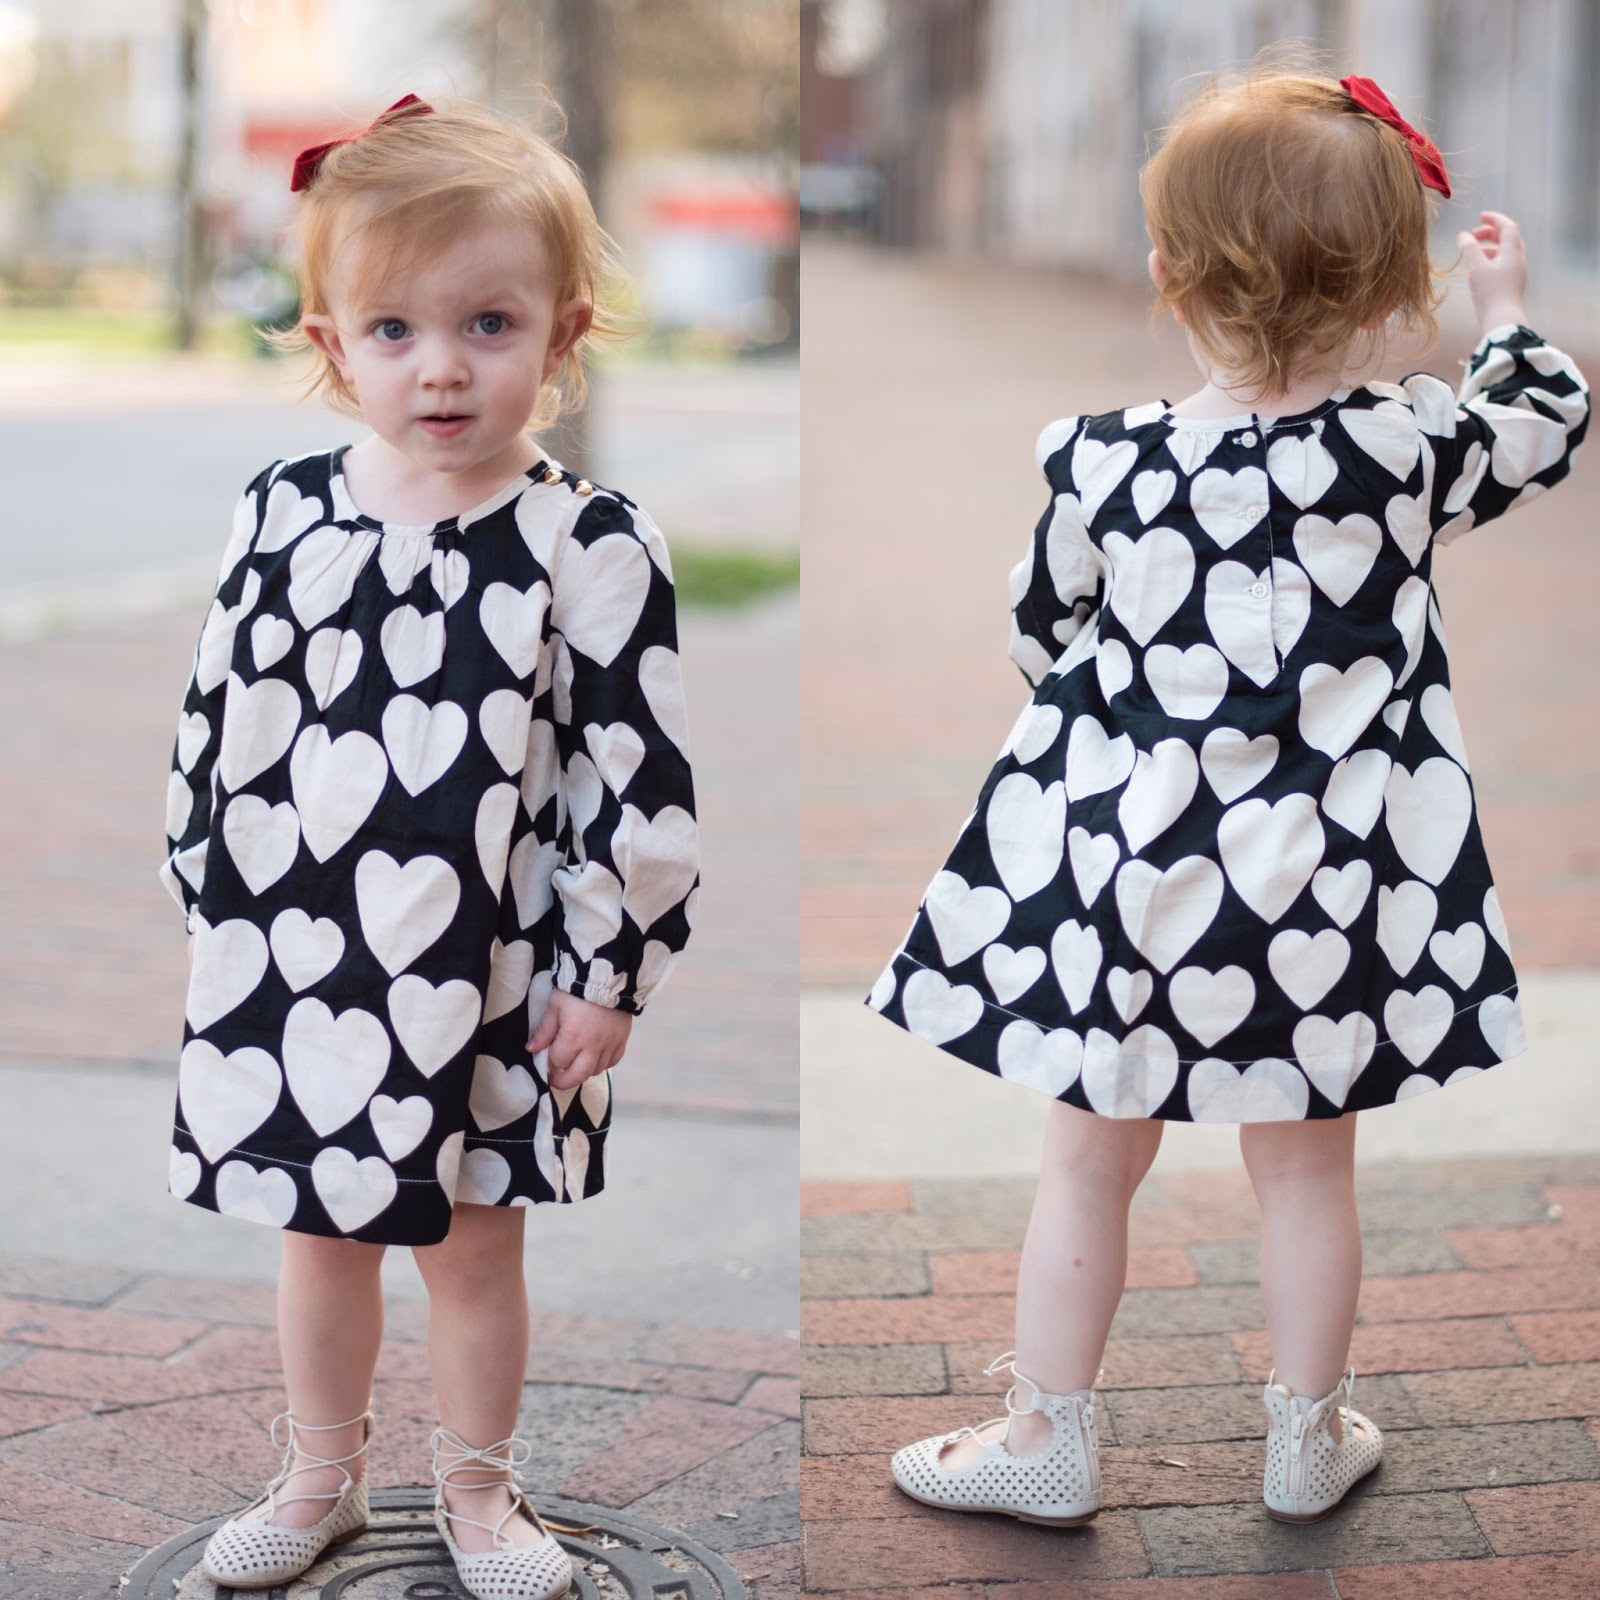 Baby Fashion - Something Delightful Blog